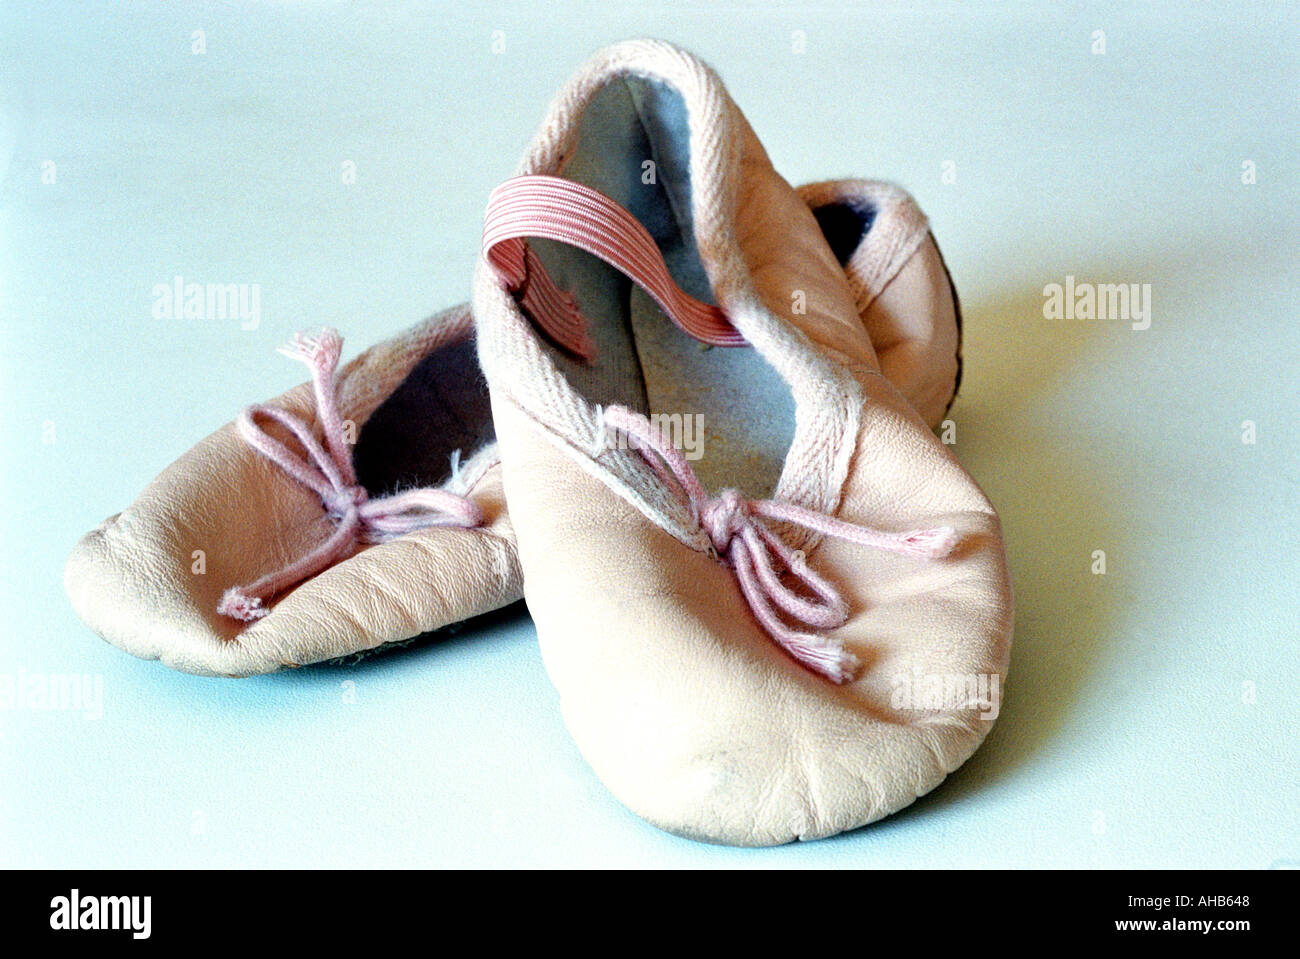 A pair of childs ballet shoes - Stock Image